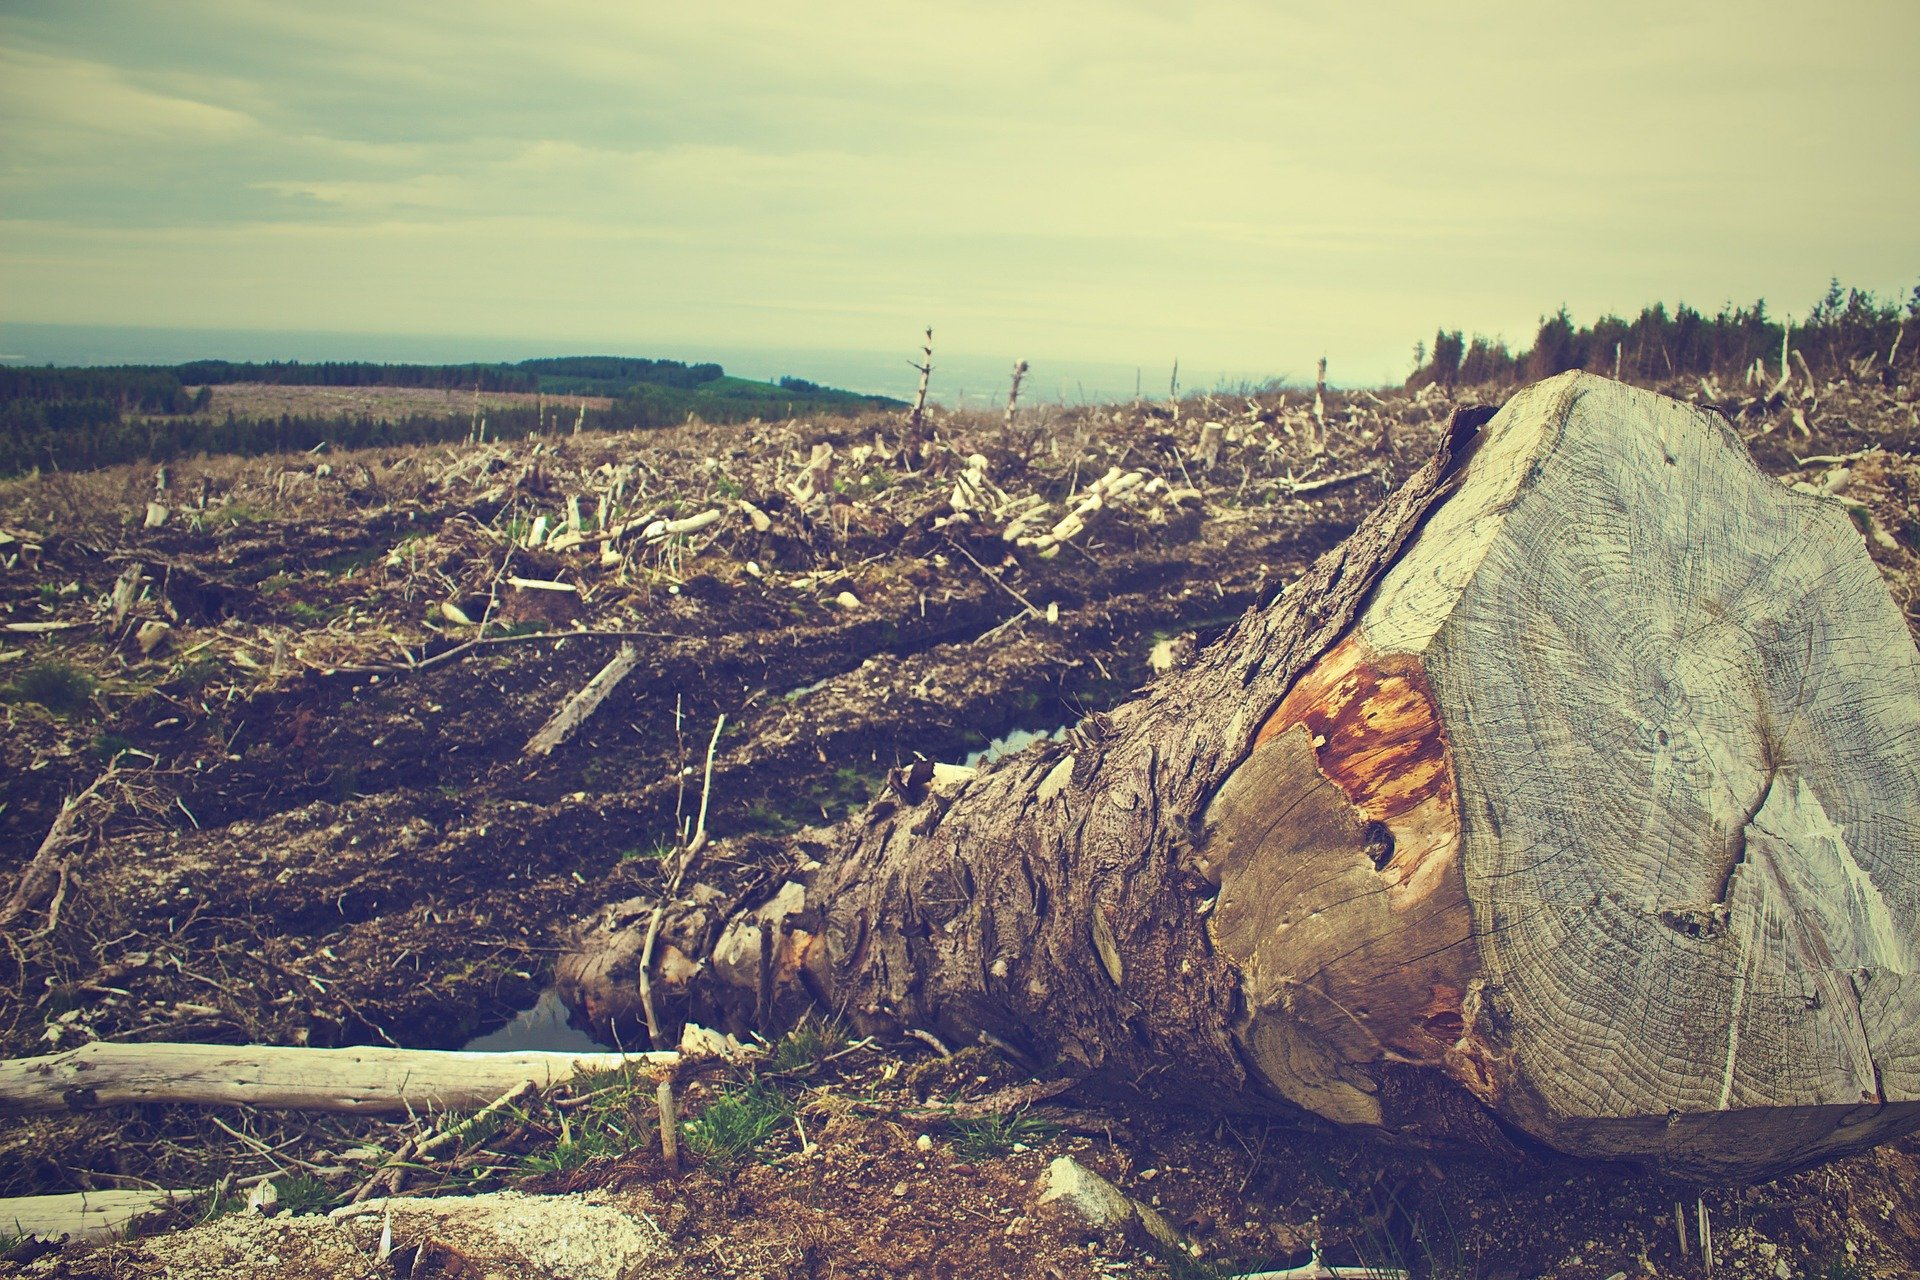 Deforestation. Image credit Picography on Pixabay